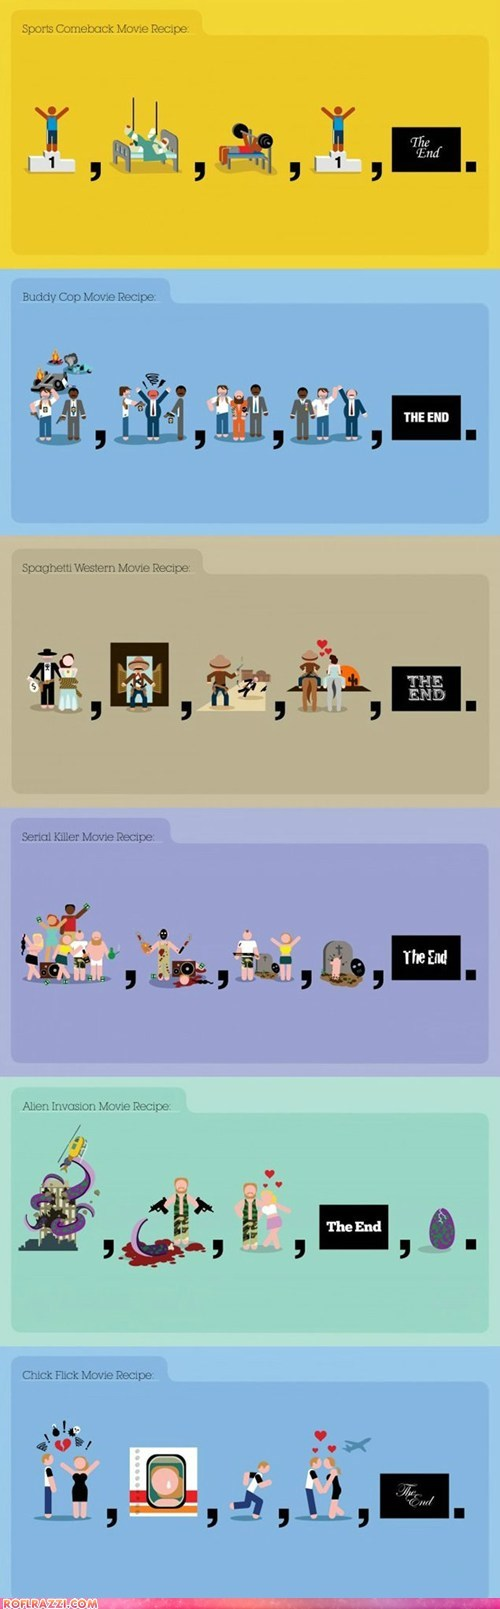 film,funny,hbo,infographic,Movie,recipe